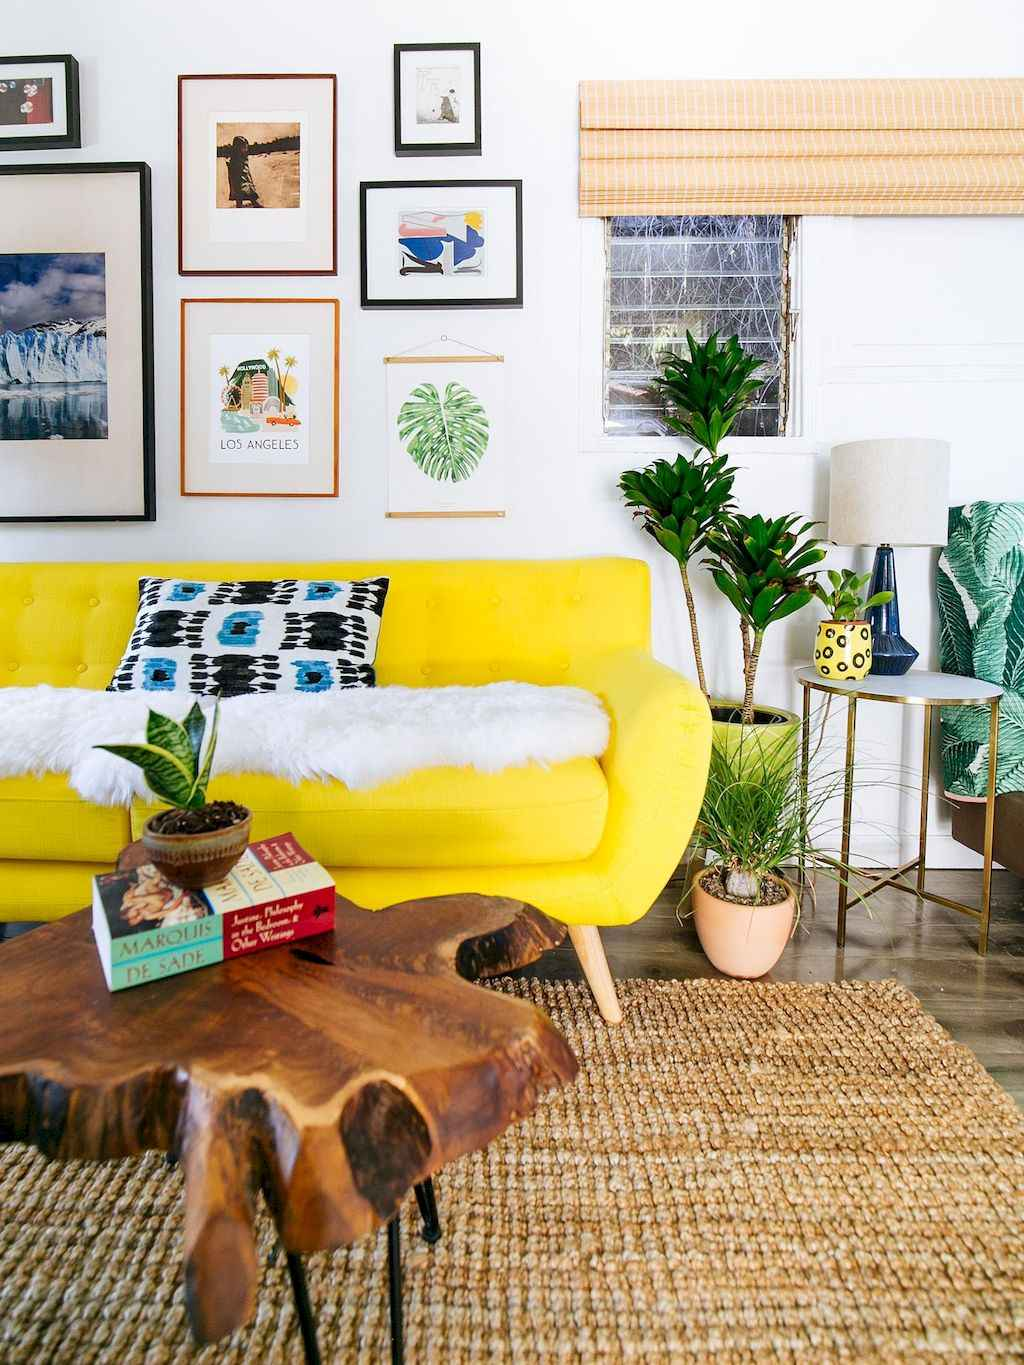 62 Beautiful Yellow Sofa for Living Room Decor Ideas